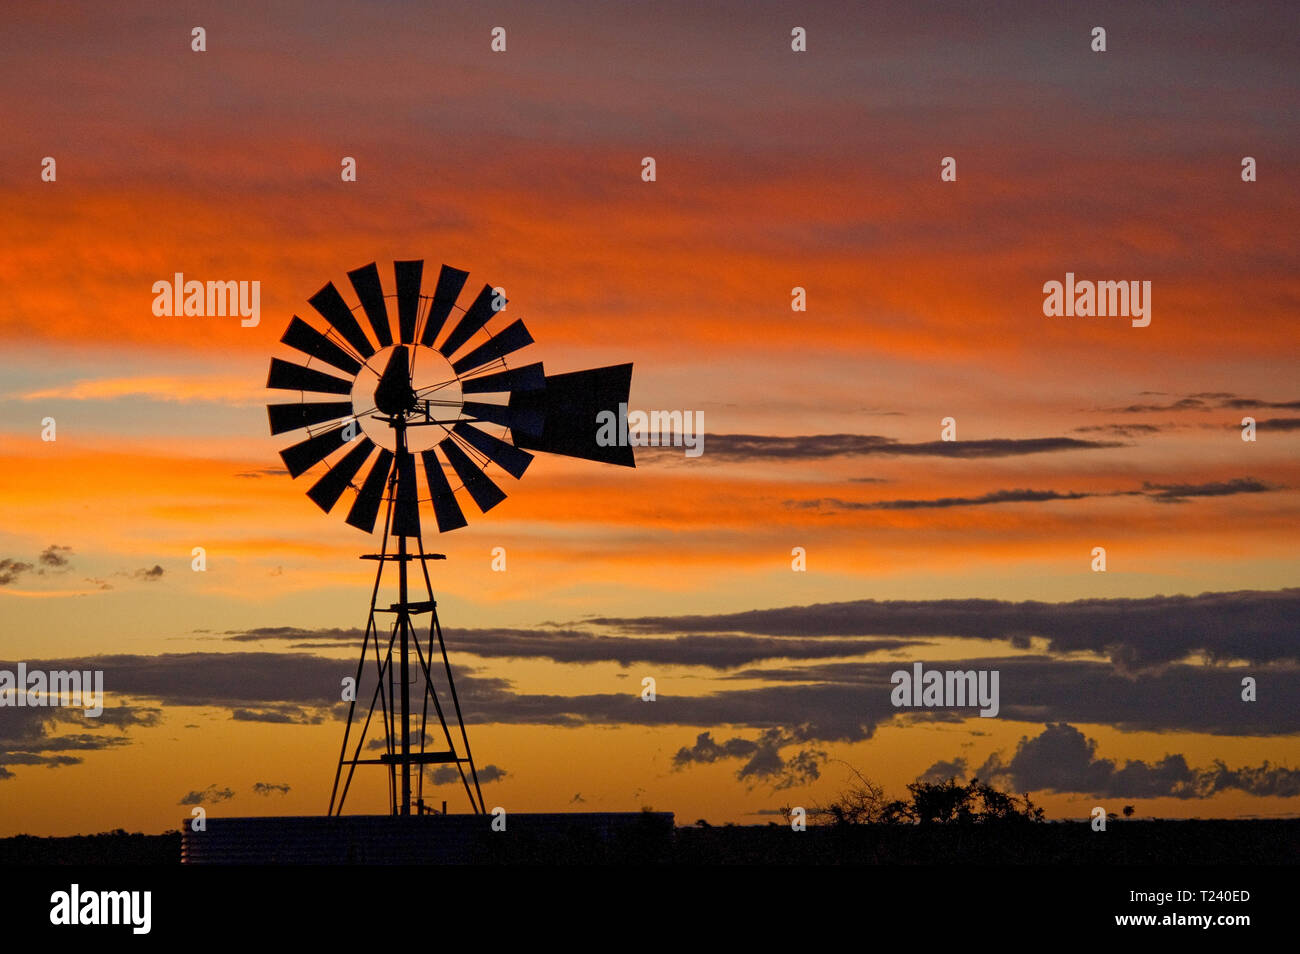 Wind wheel, silhouette at sunset, Valdes Peninsula, Nature Reserve, Patagonia, Argentina - Stock Image